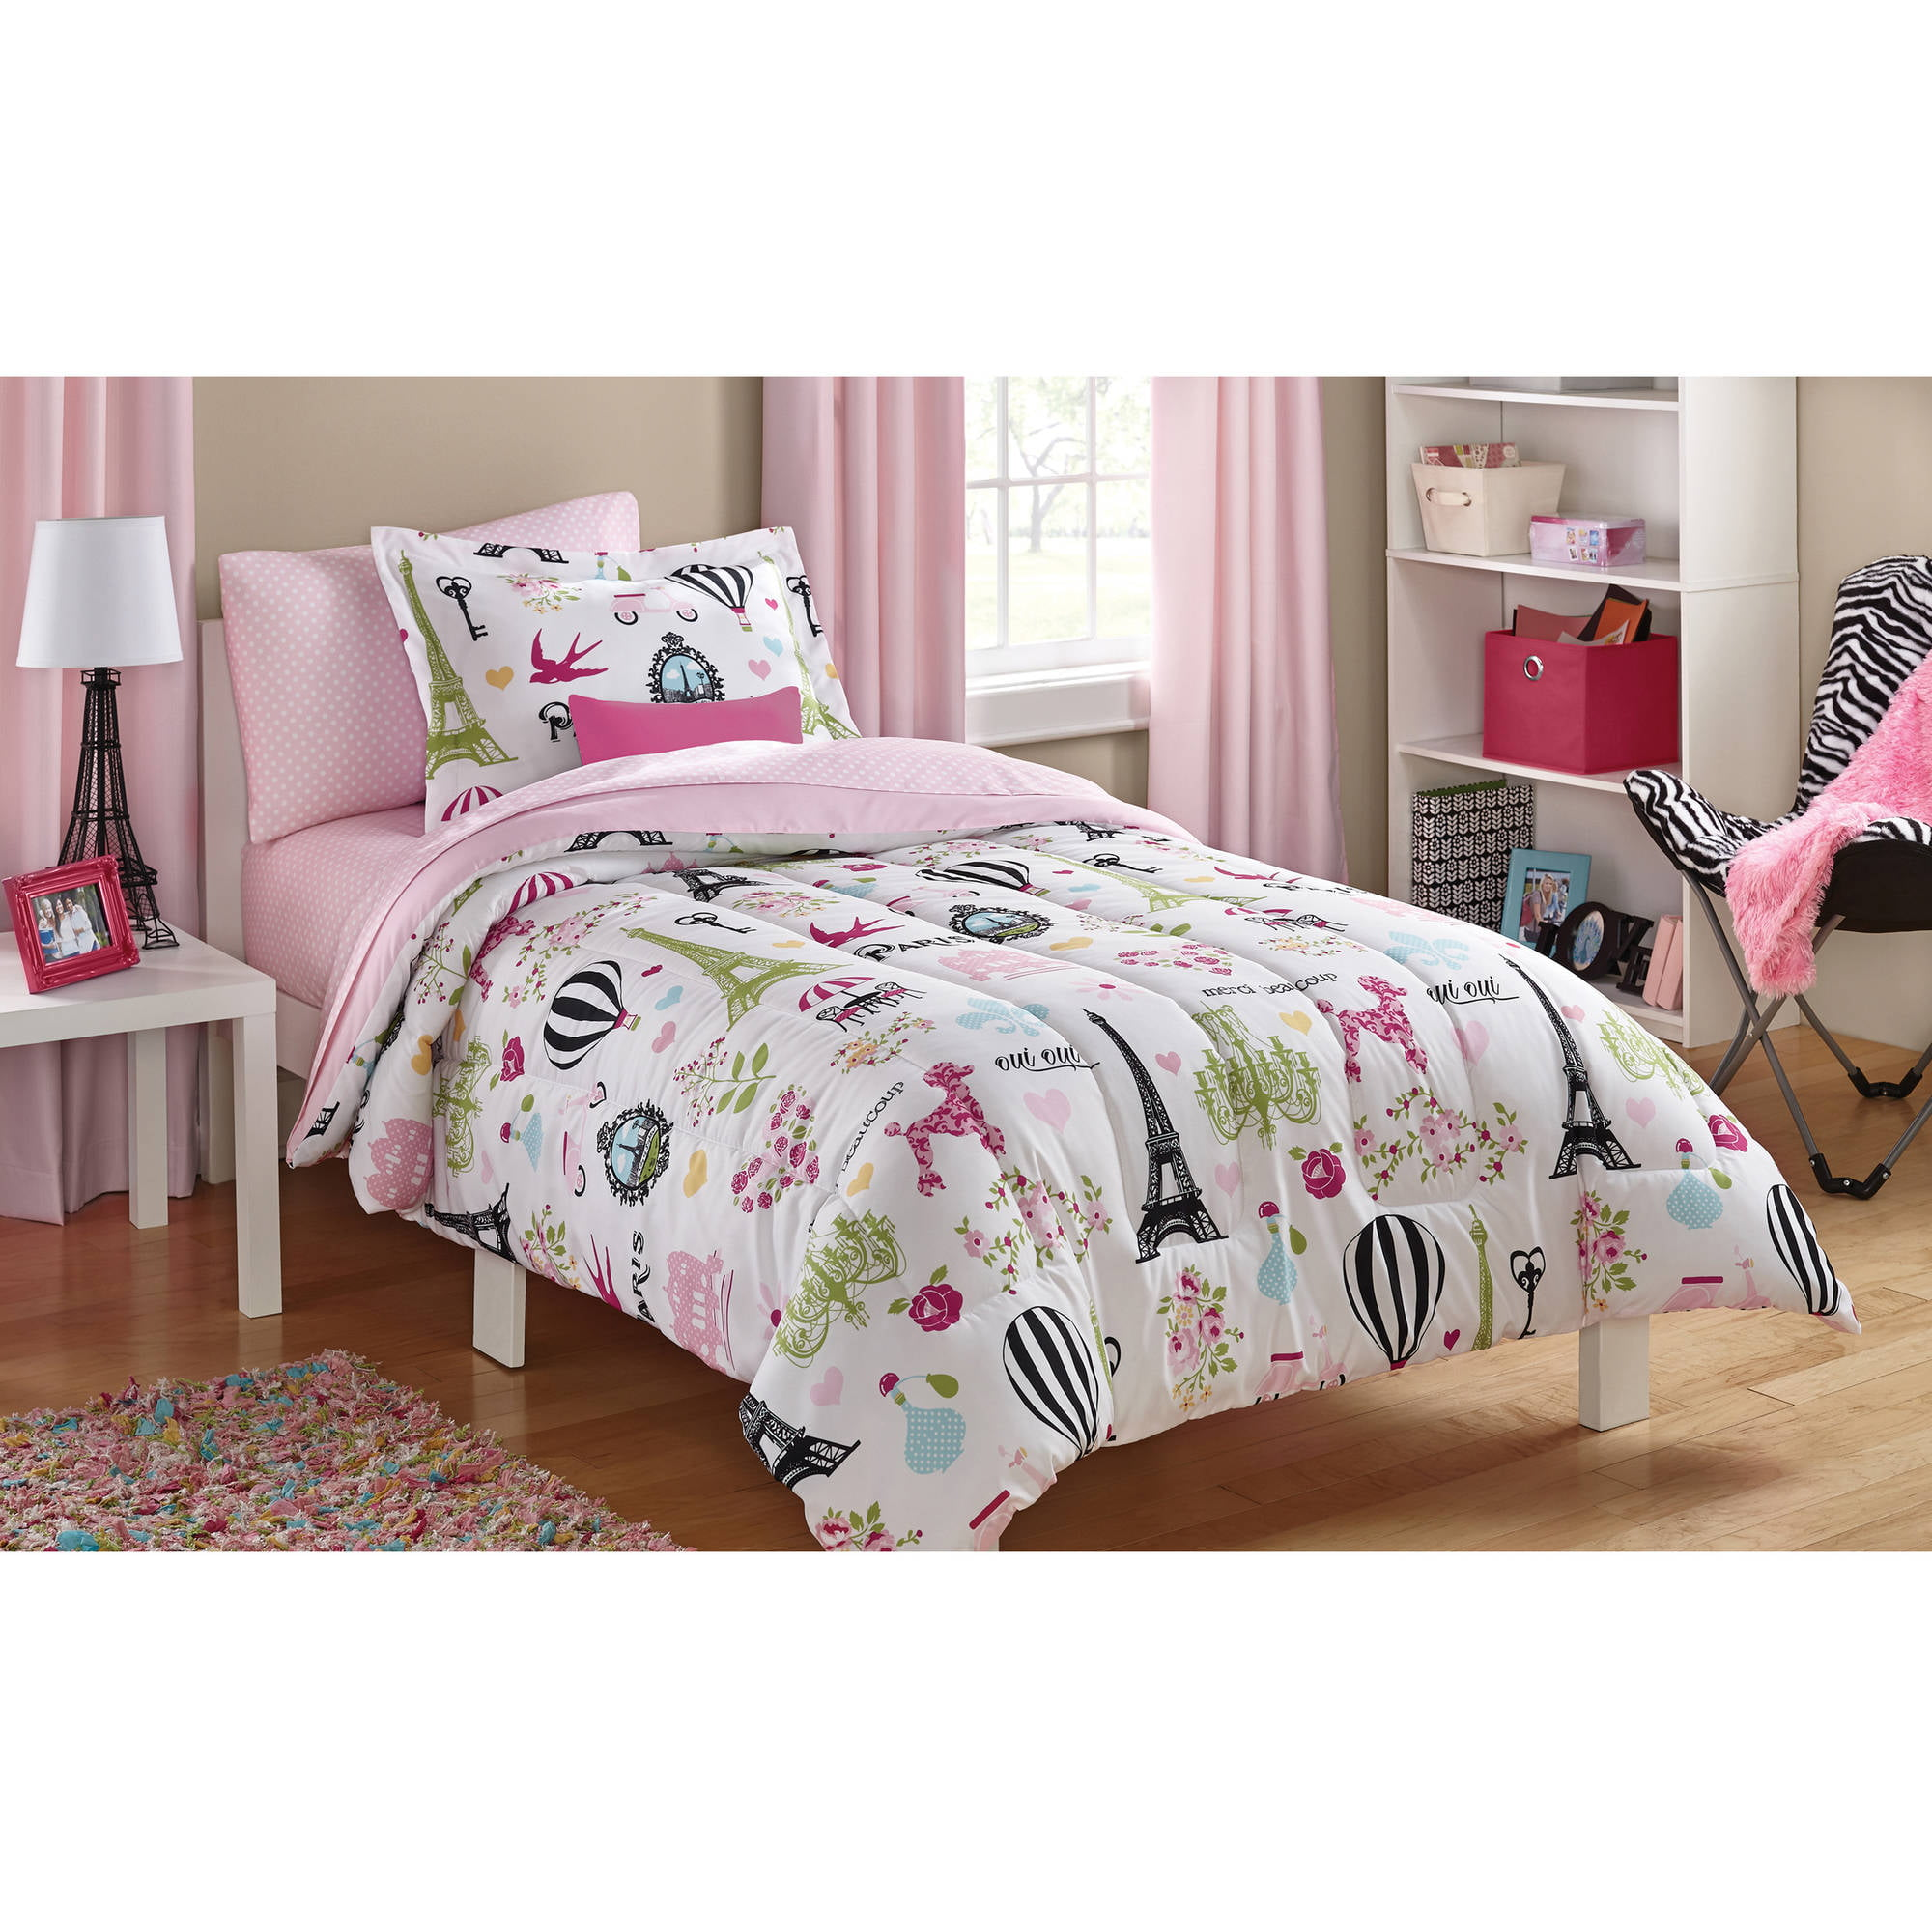 girlskids daybed teenageirlskidsirlstwin comforter sets girls twin bedding daybedr of girlstwin forirls full teenage photos kids wonderful for design size